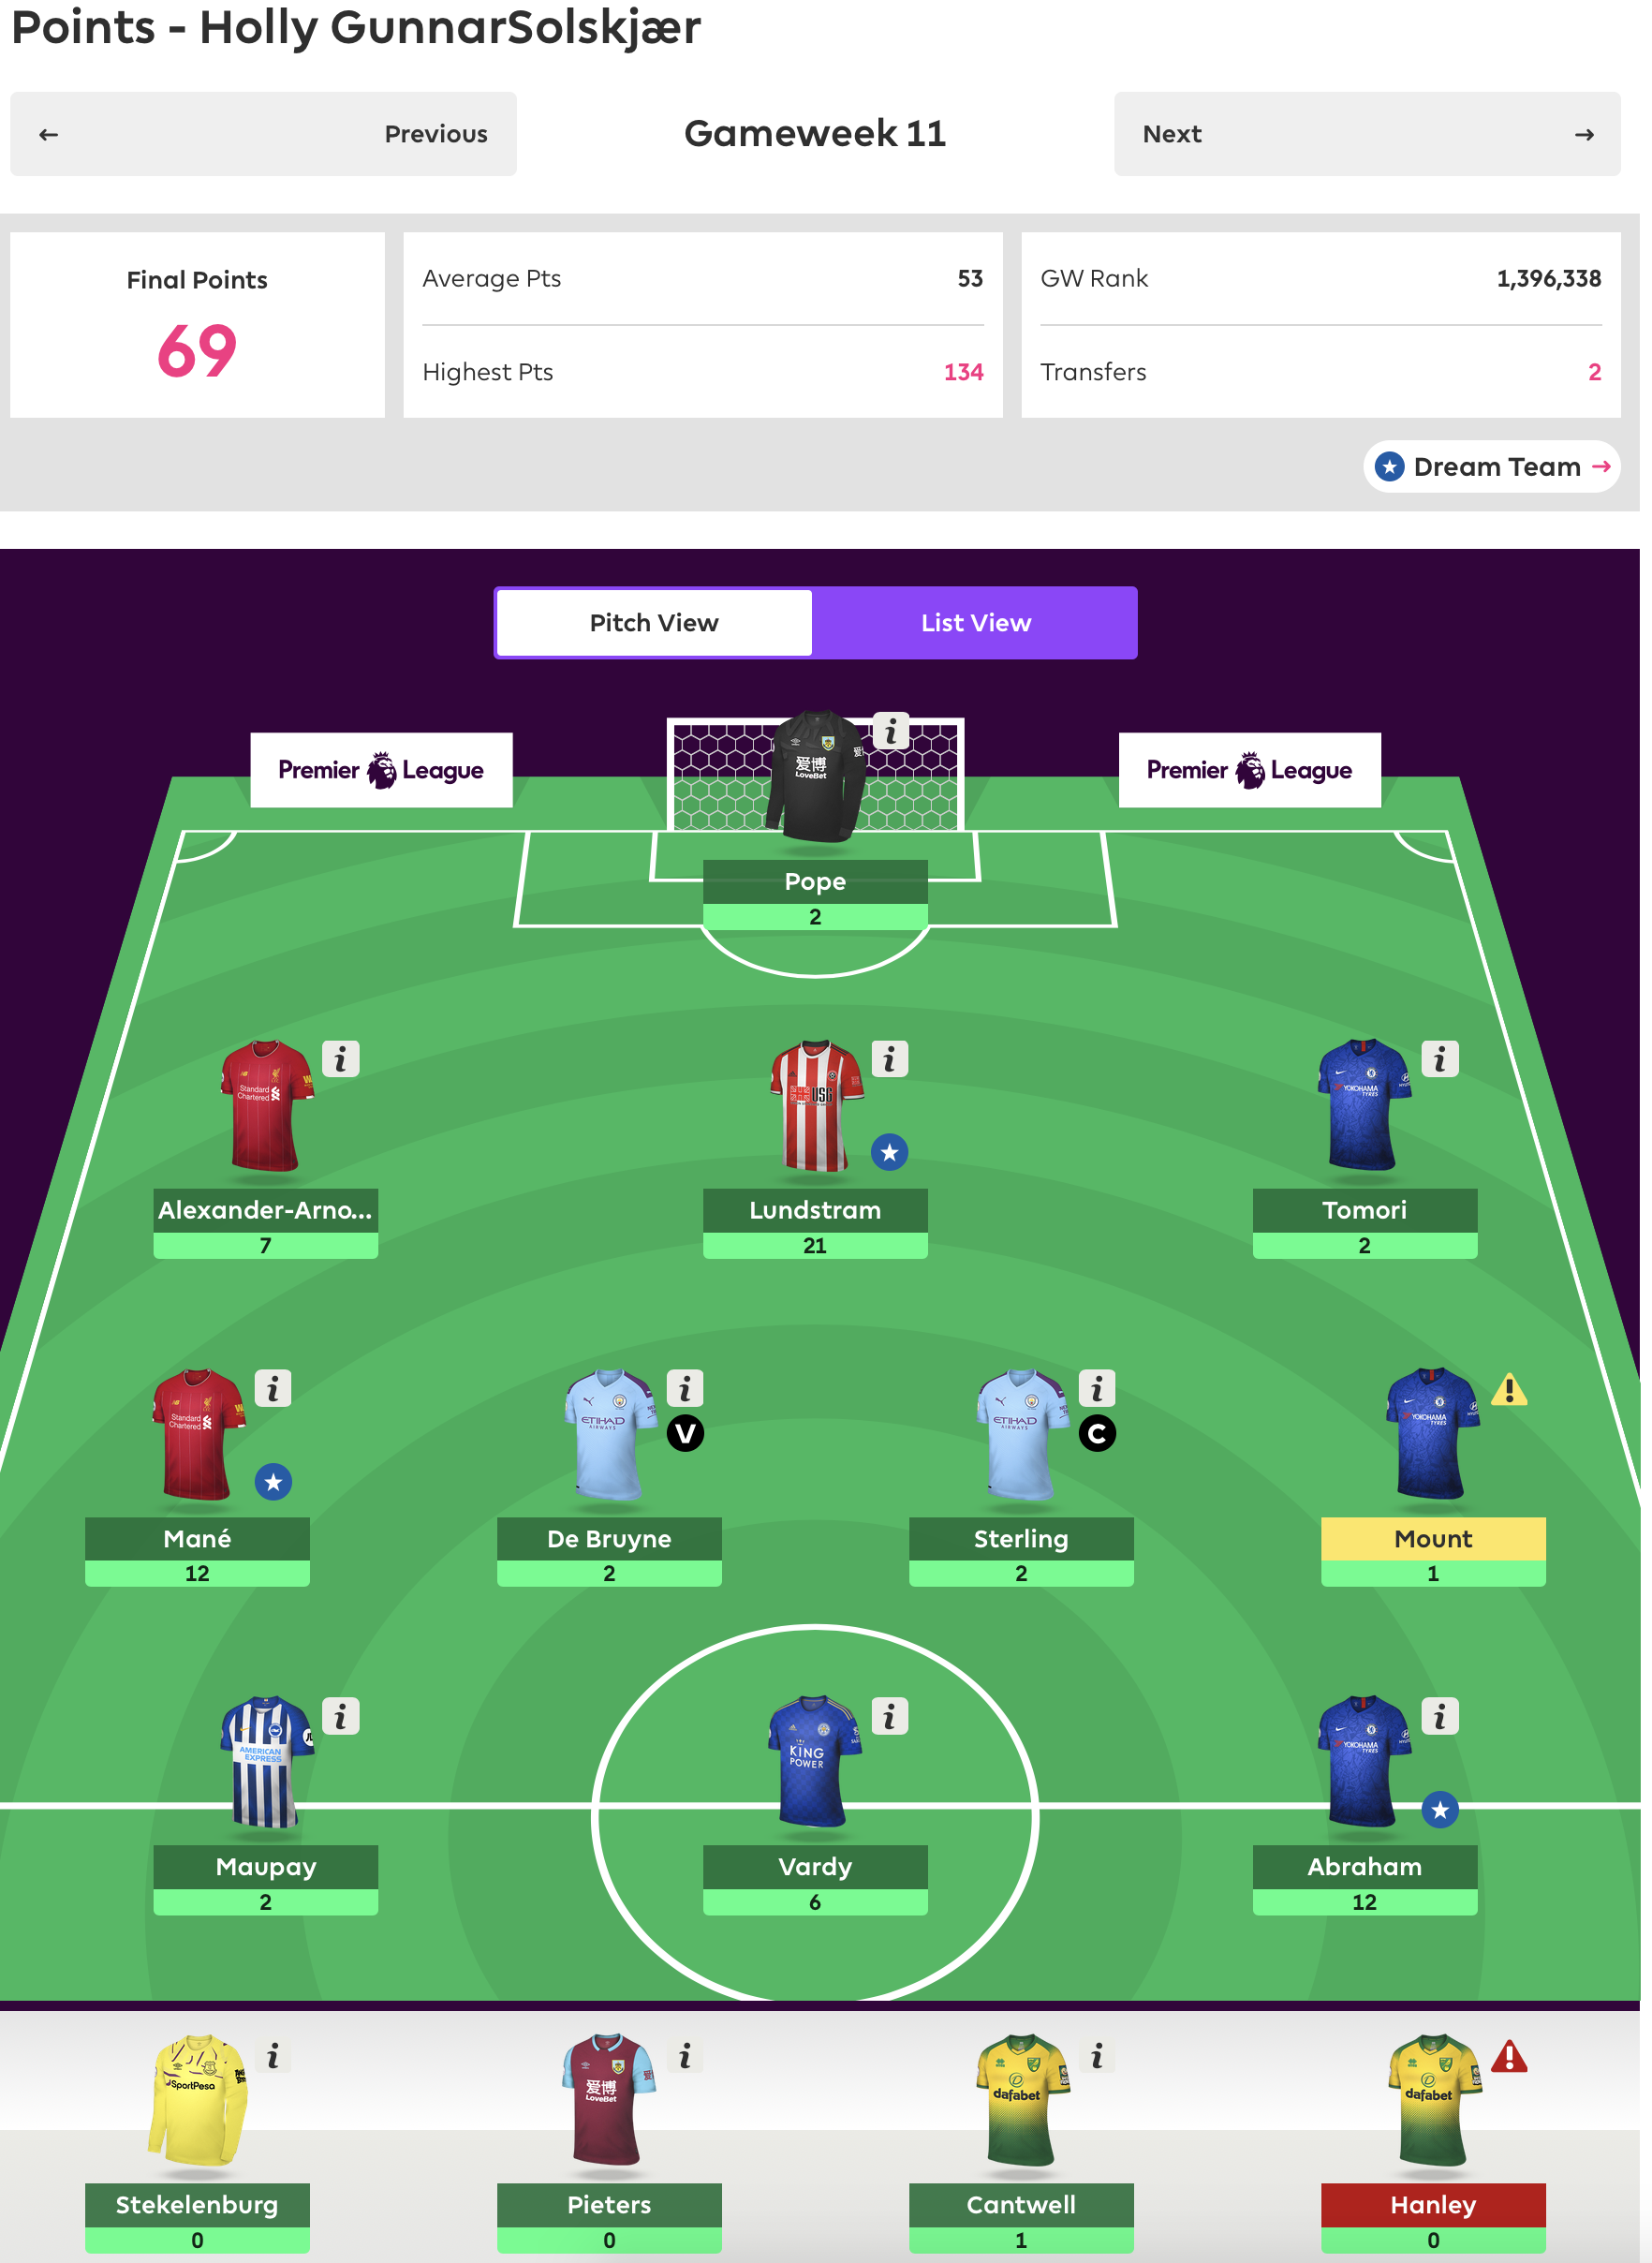 Gameweek 11 Review